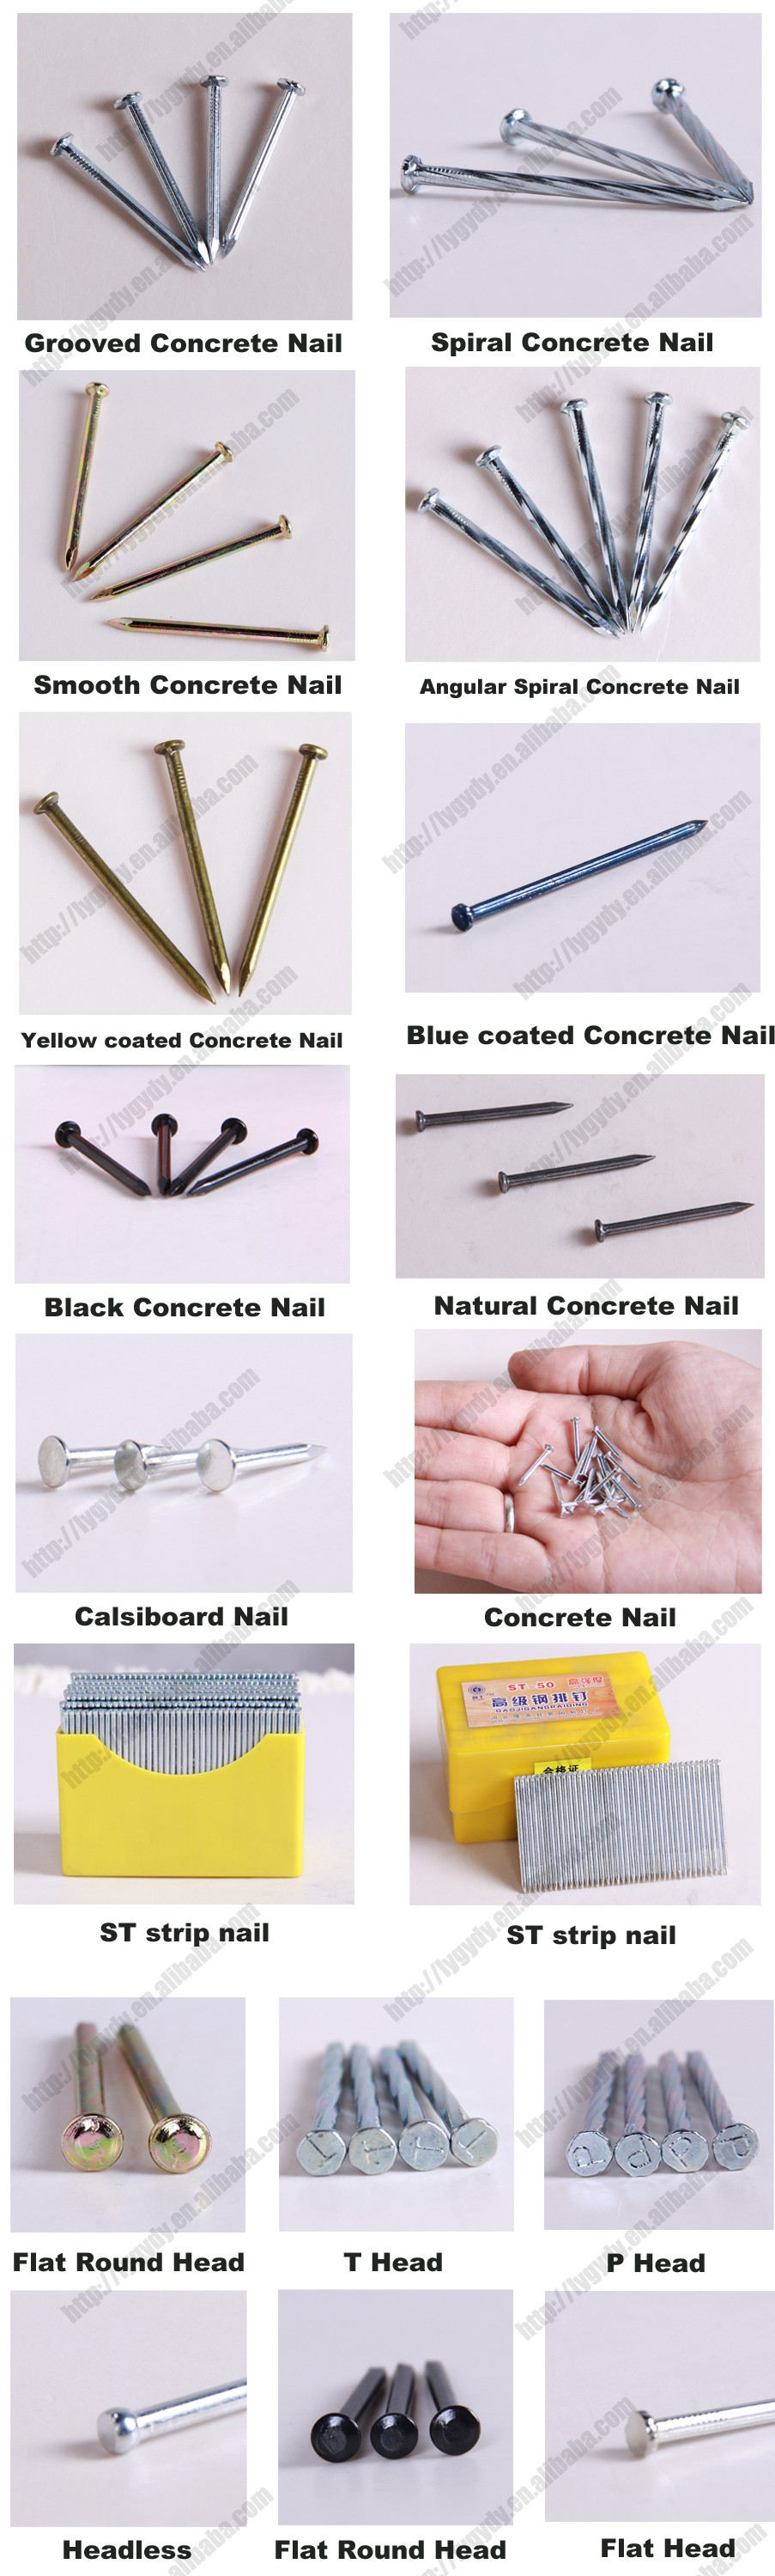 Competitive price blue grooved concrete nails manufacturer